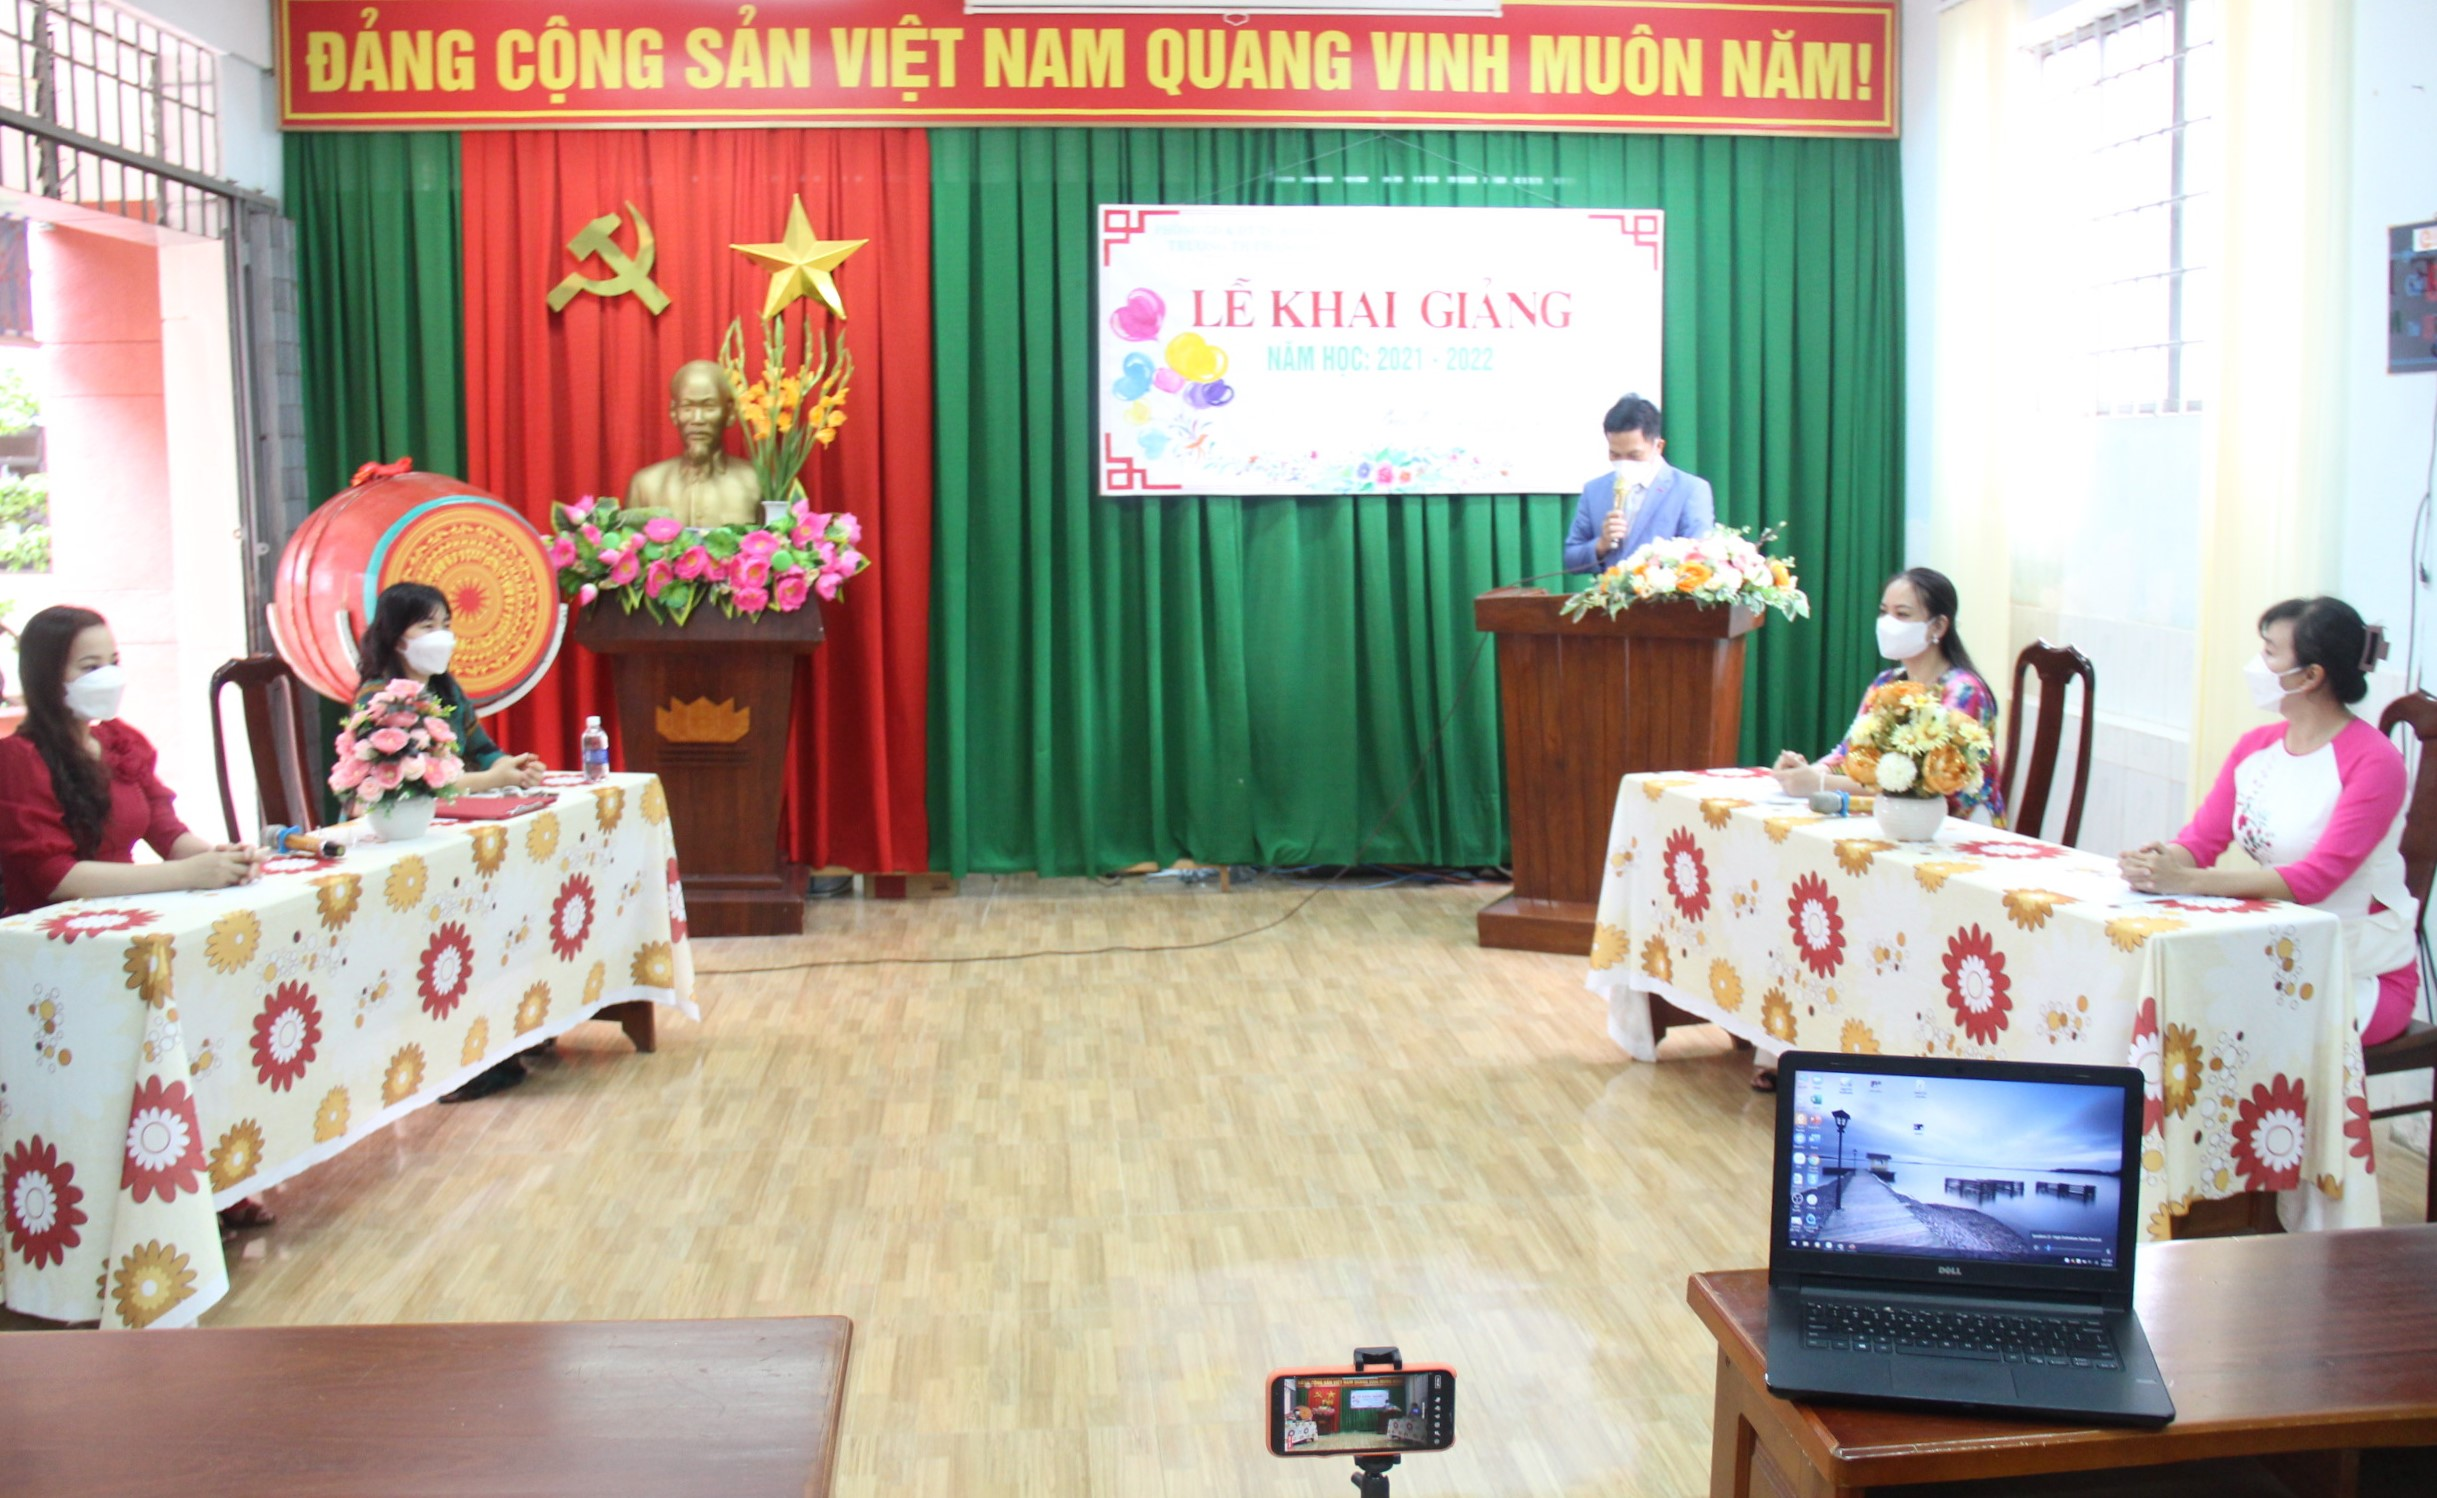 Dak Lak Province organizes the opening ceremony of the 2021-2022 school year safely, concisely, and practically